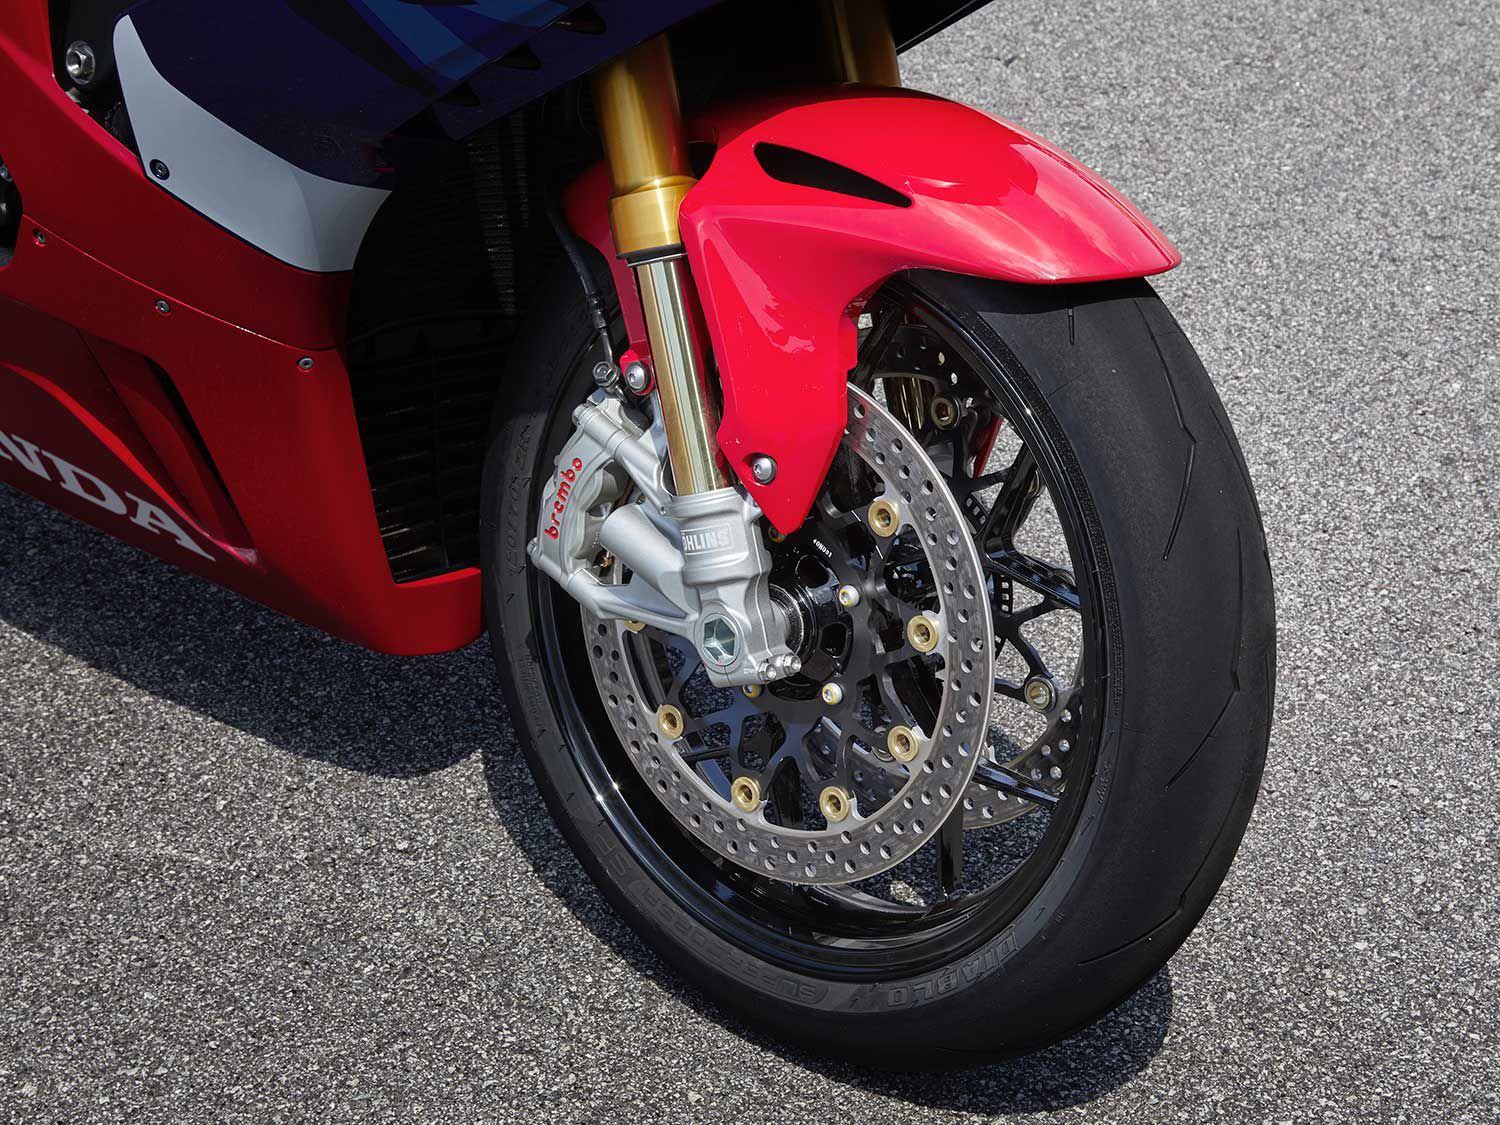 The Fireblade SP gets a 43mm Öhlins NPX-series fork with electronic control. The brake rotors grow in size and are clamped by Brembo's latest-and-greatest radial-mount calipers.